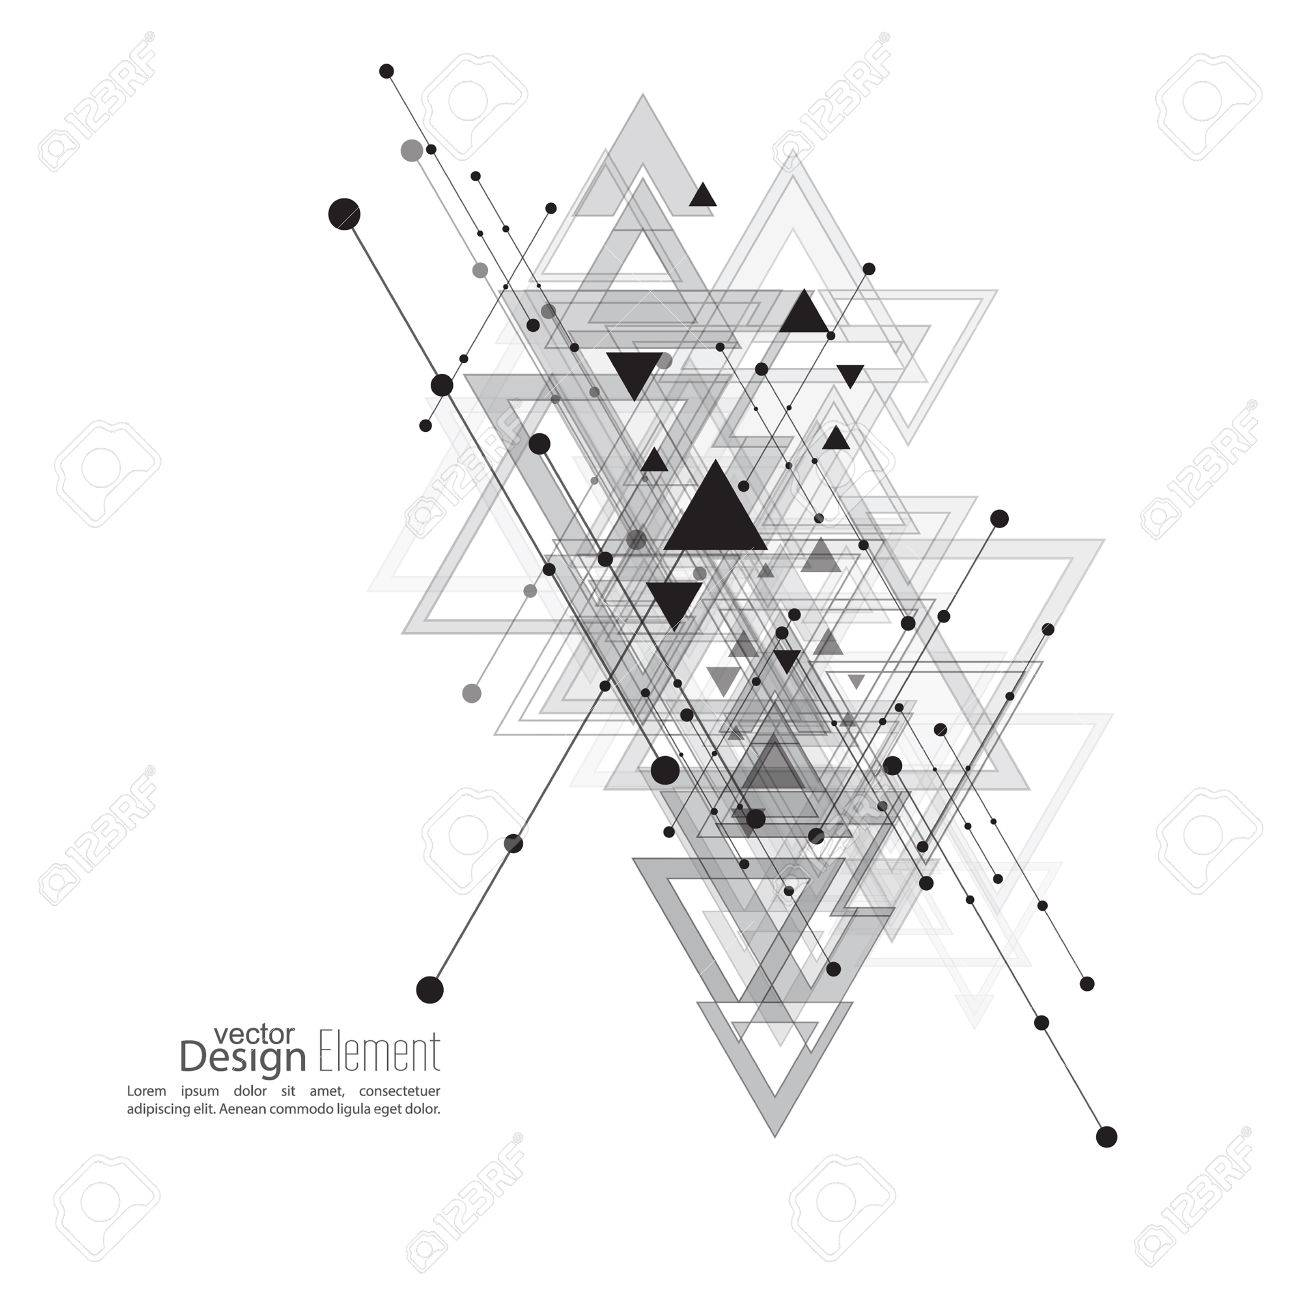 Abstract vector background with geometric shapes intersecting abstract vector background with geometric shapes intersecting diagonal lines with dots and translucent triangles buycottarizona